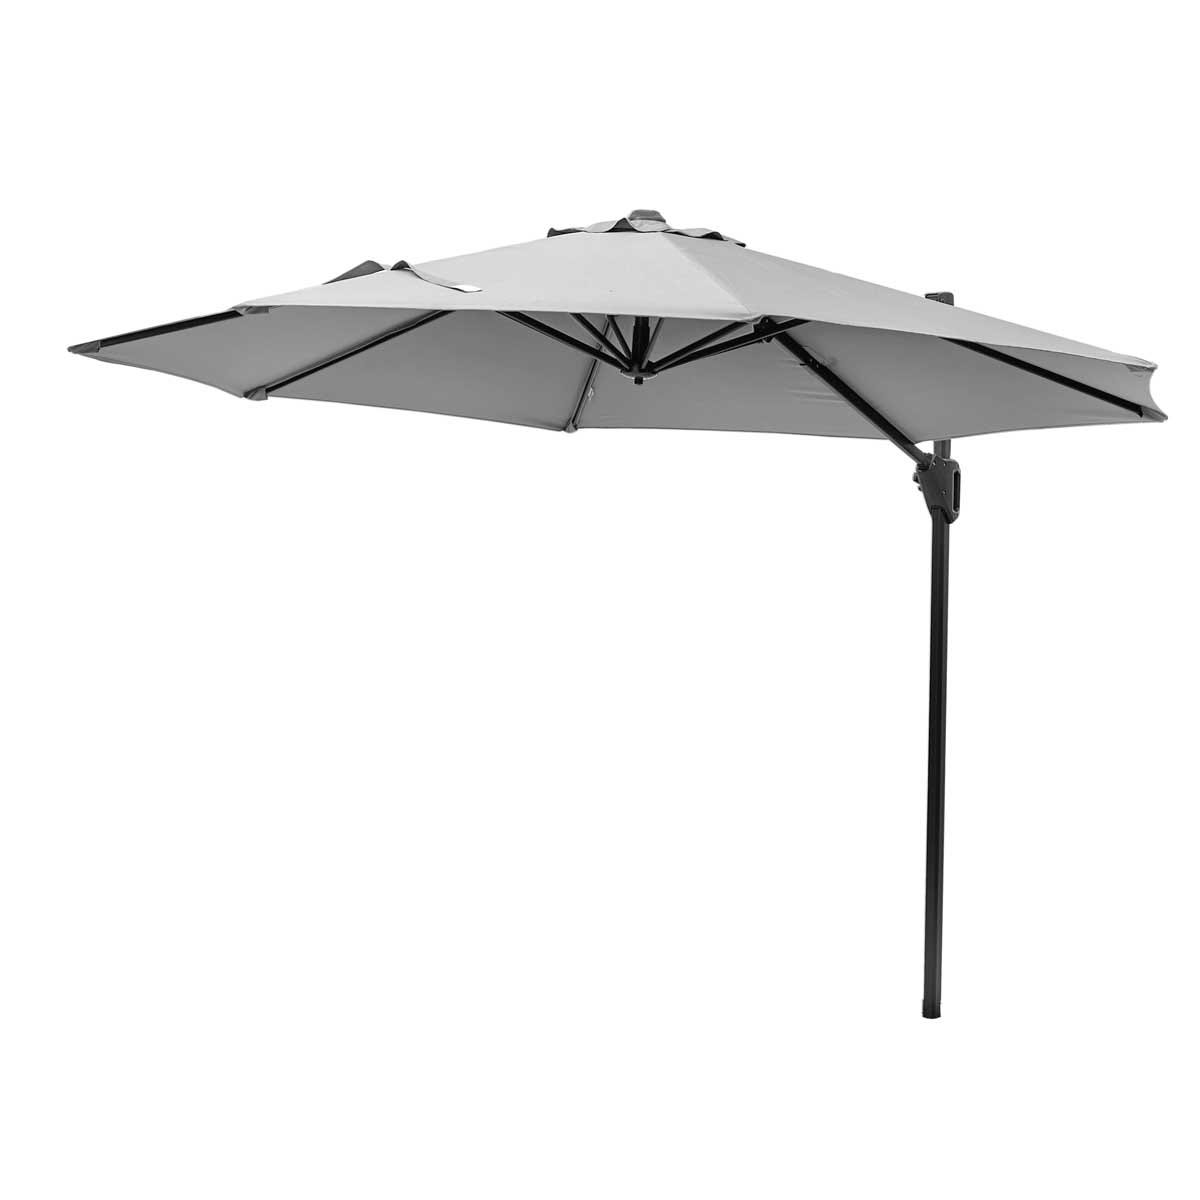 Platinum Voyager T1 3m Round Parasol (base not included) - Light Grey